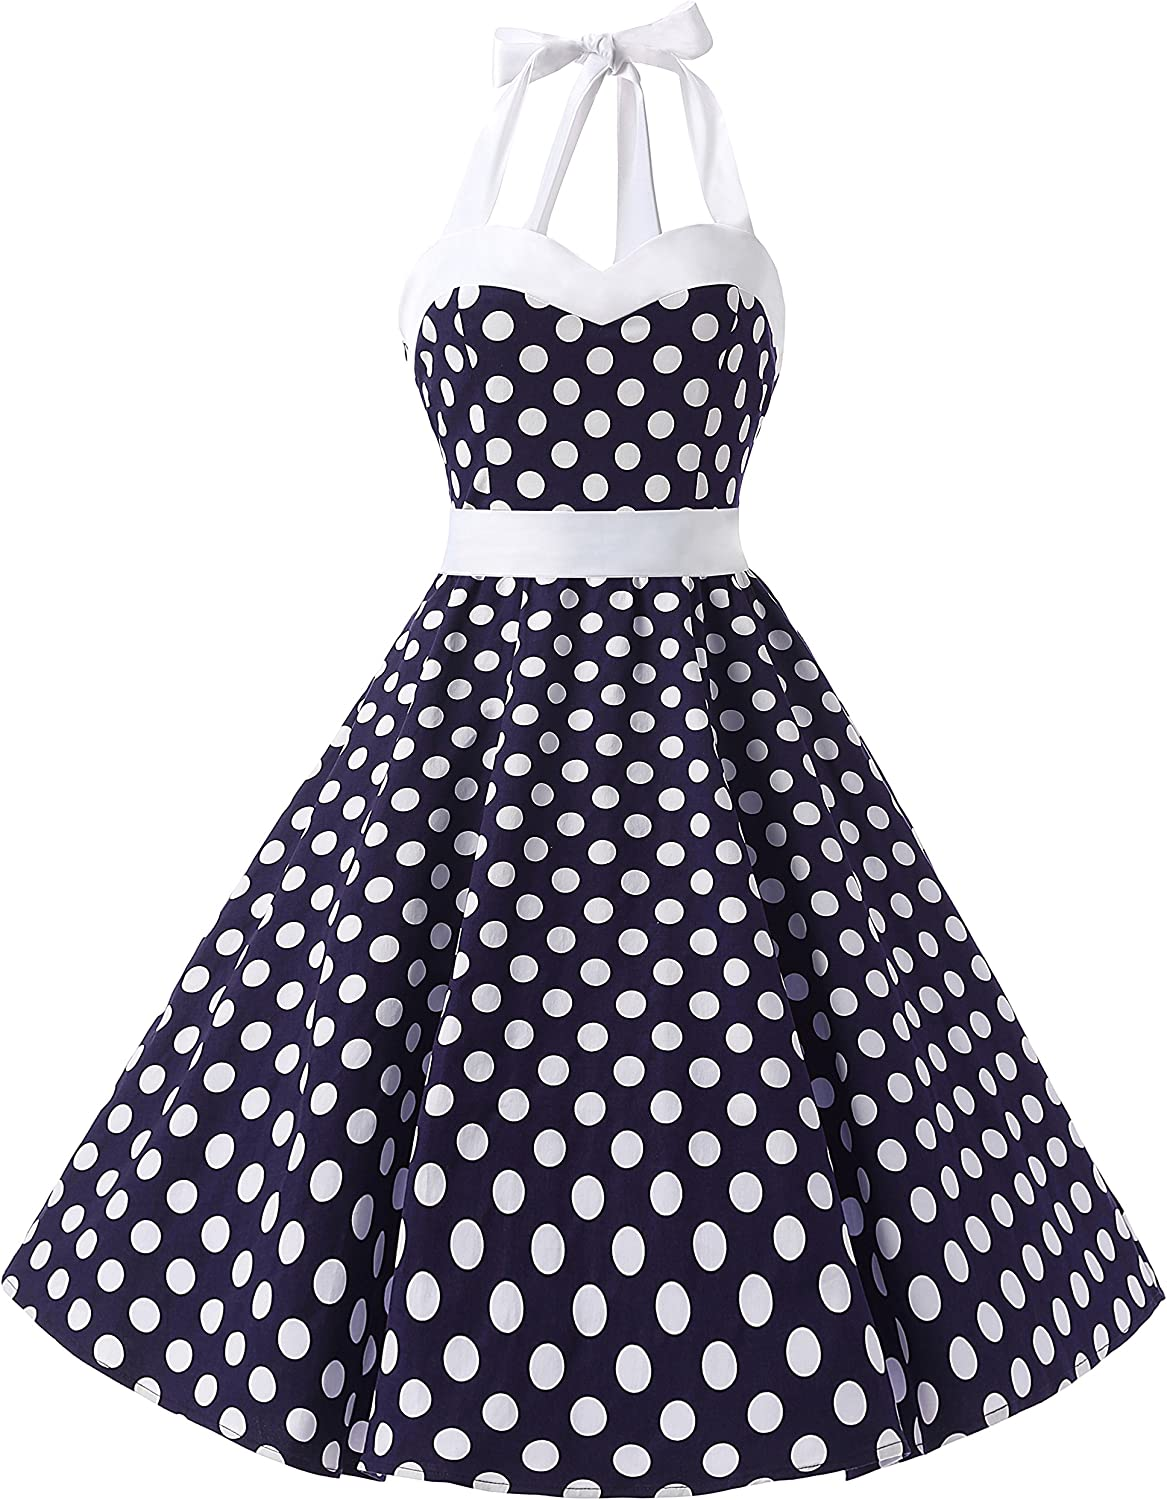 TALLA XL. Dresstells® Halter 50s Rockabilly Polka Dots Audrey Dress Retro Cocktail Dress Pink Black Dot XL